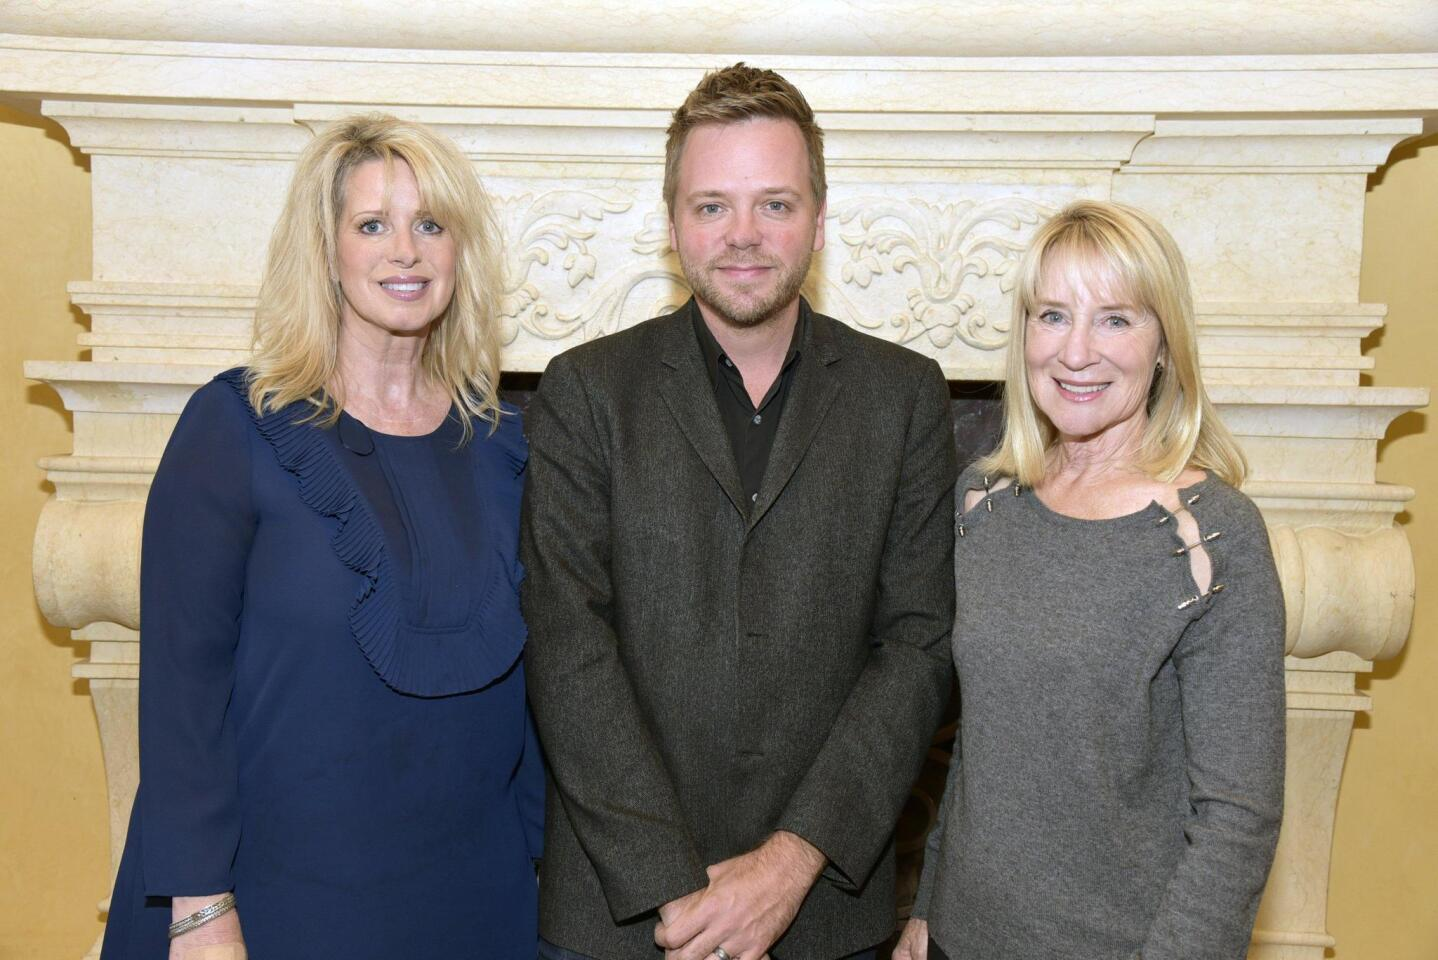 Kelly Colvard of Northern Trust Events and Marketing, author Nathan Hill, Rancho Santa Fe Literary Society President Candace Humber